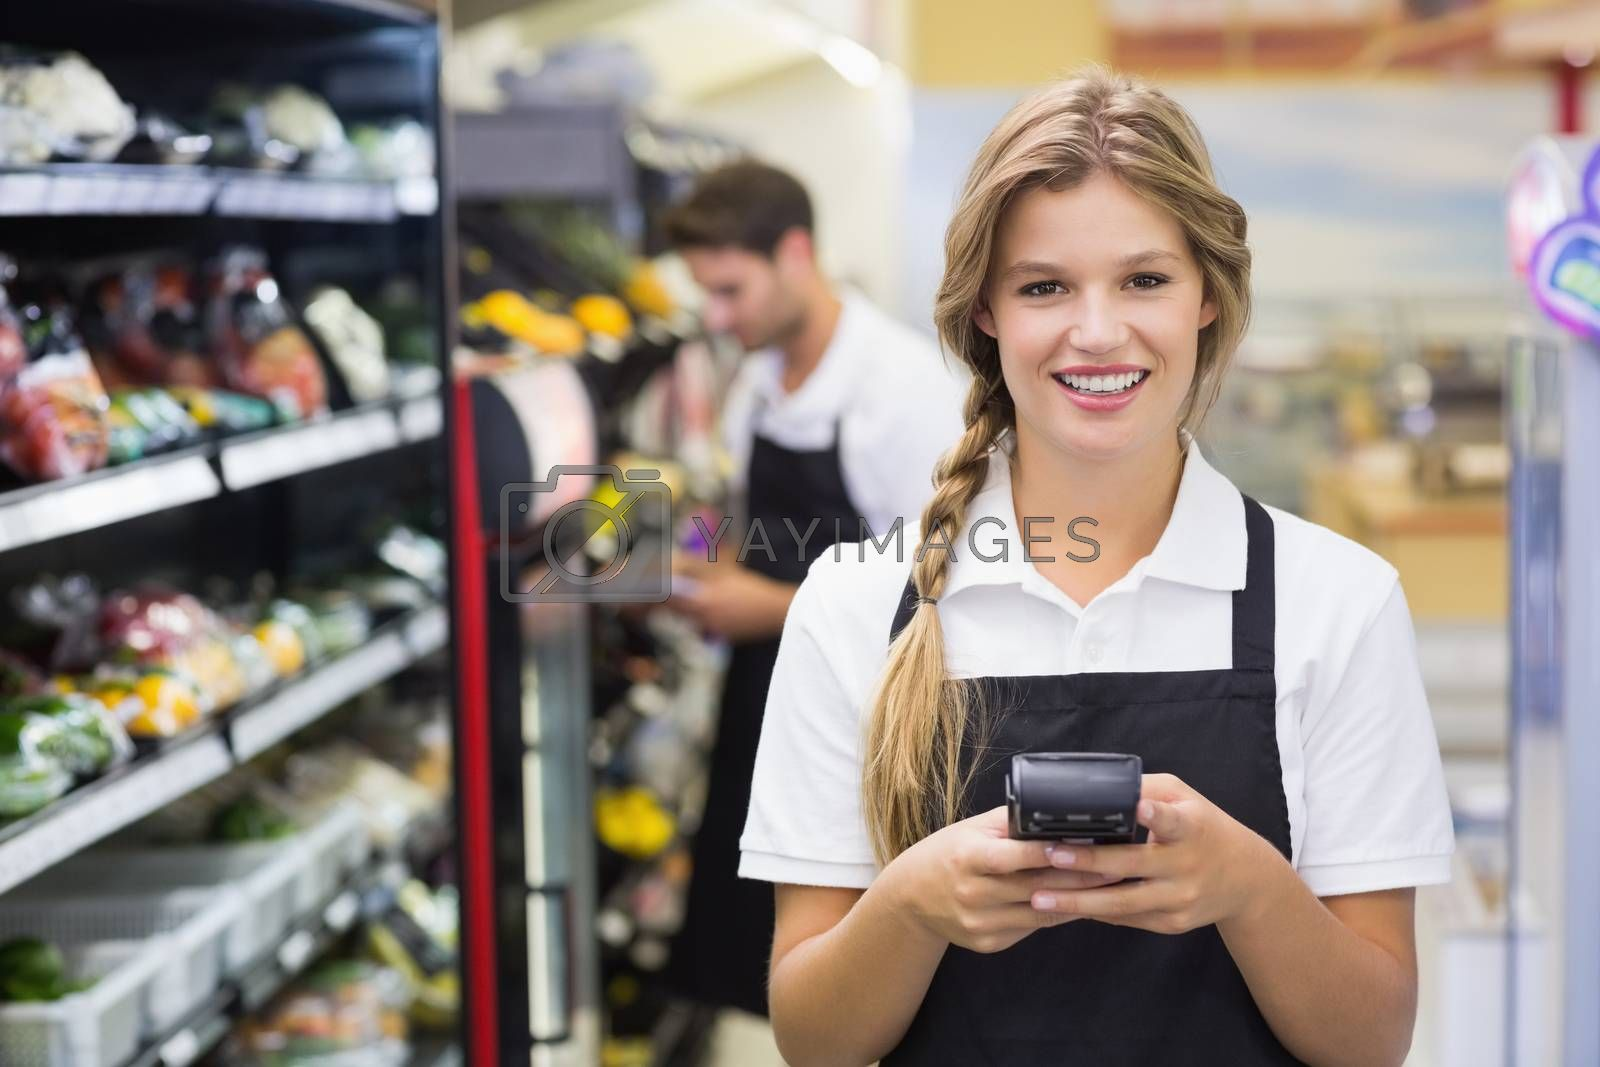 Royalty free image of Portrait of smiling pretty blonde woman using handheld  by Wavebreakmedia